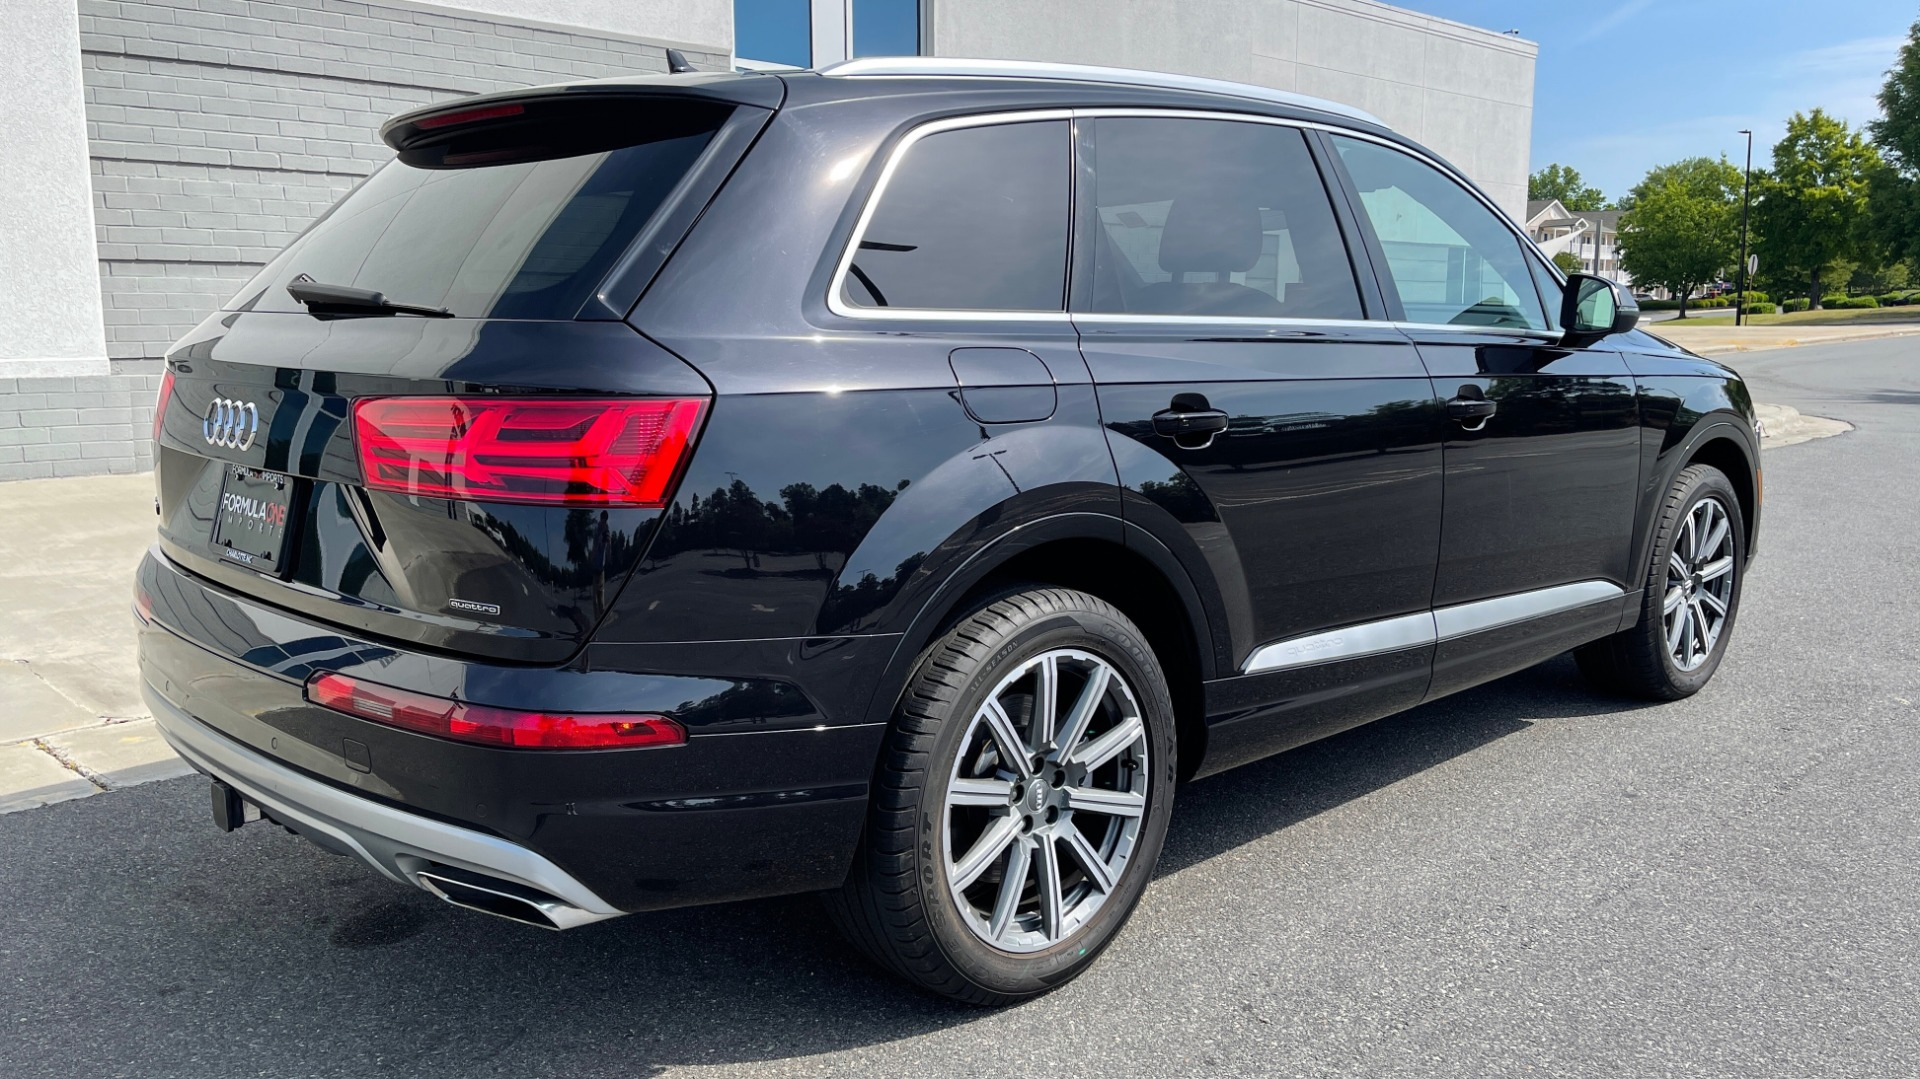 Used 2018 Audi Q7 PREMIUM PLUS / NAV / PANO-ROOF / BOSE / 3-ROW / REARVIEW for sale $43,461 at Formula Imports in Charlotte NC 28227 2